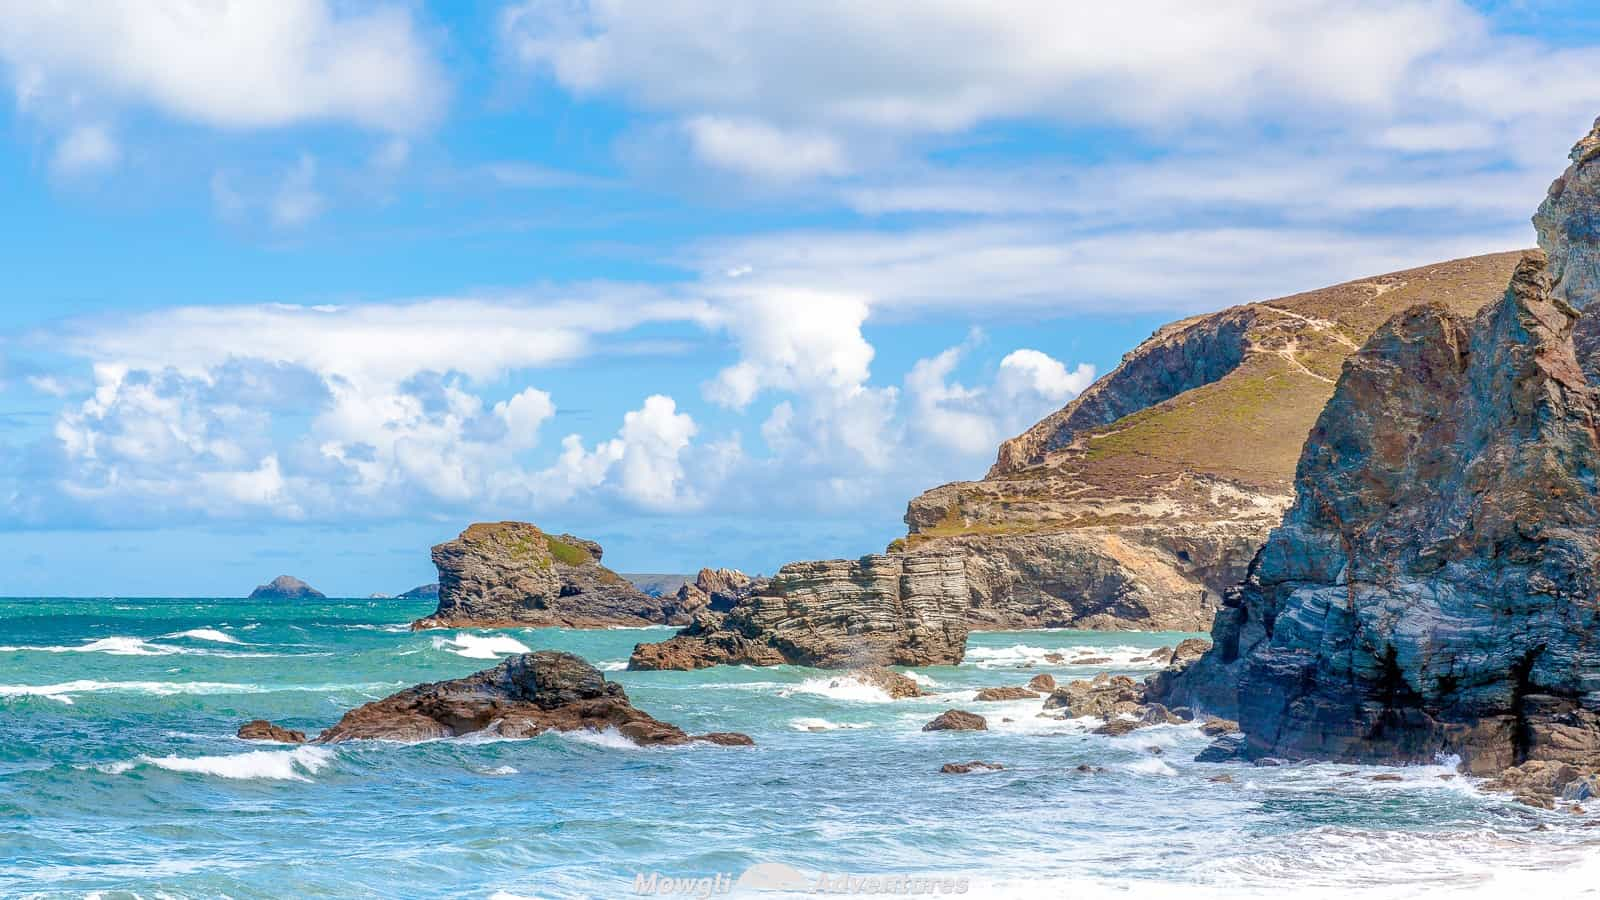 Cornwall's rugged coastline is wild & full of hidden coves. Real hidden gems! Here's our list of the 7 coolest coves in Cornwall to visit on a UK road trip. Read the full article here://mowgli-adventures.com/7-coolest-coves-in-cornwall/